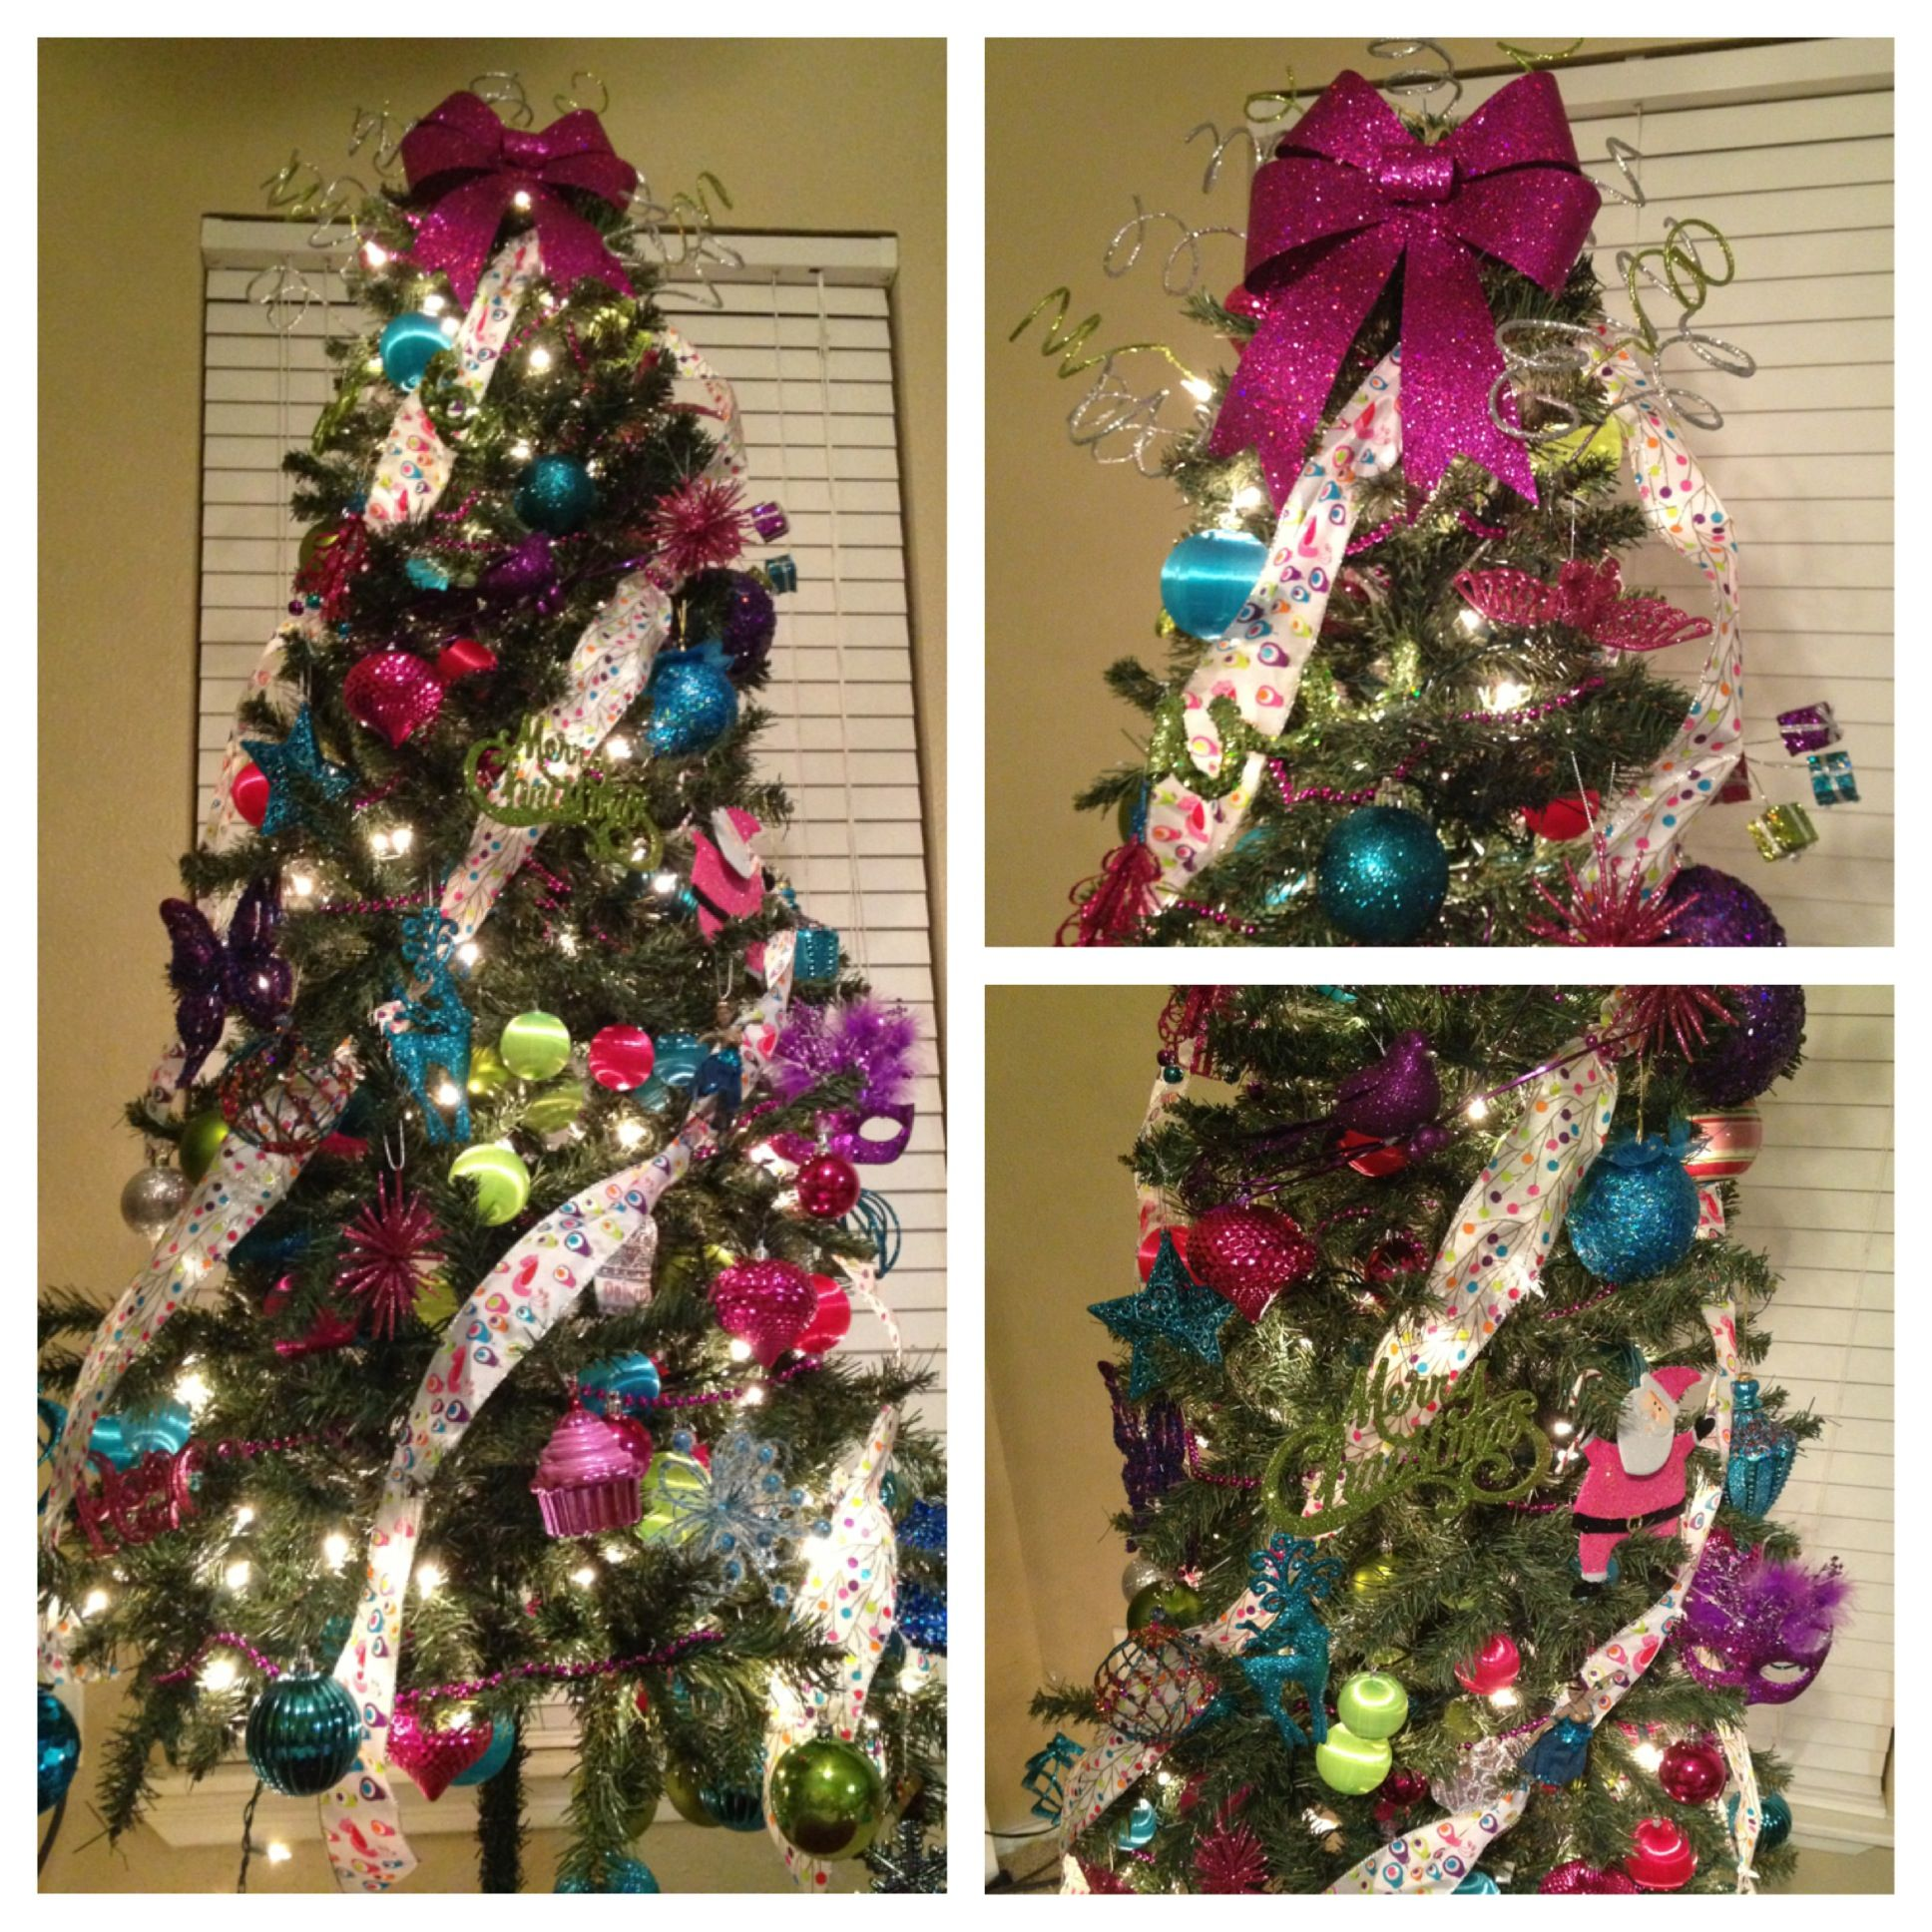 Little Girl Christmas Tree: Girly Christmas Tree Full Of Pink, Green, Blue & Purple! A